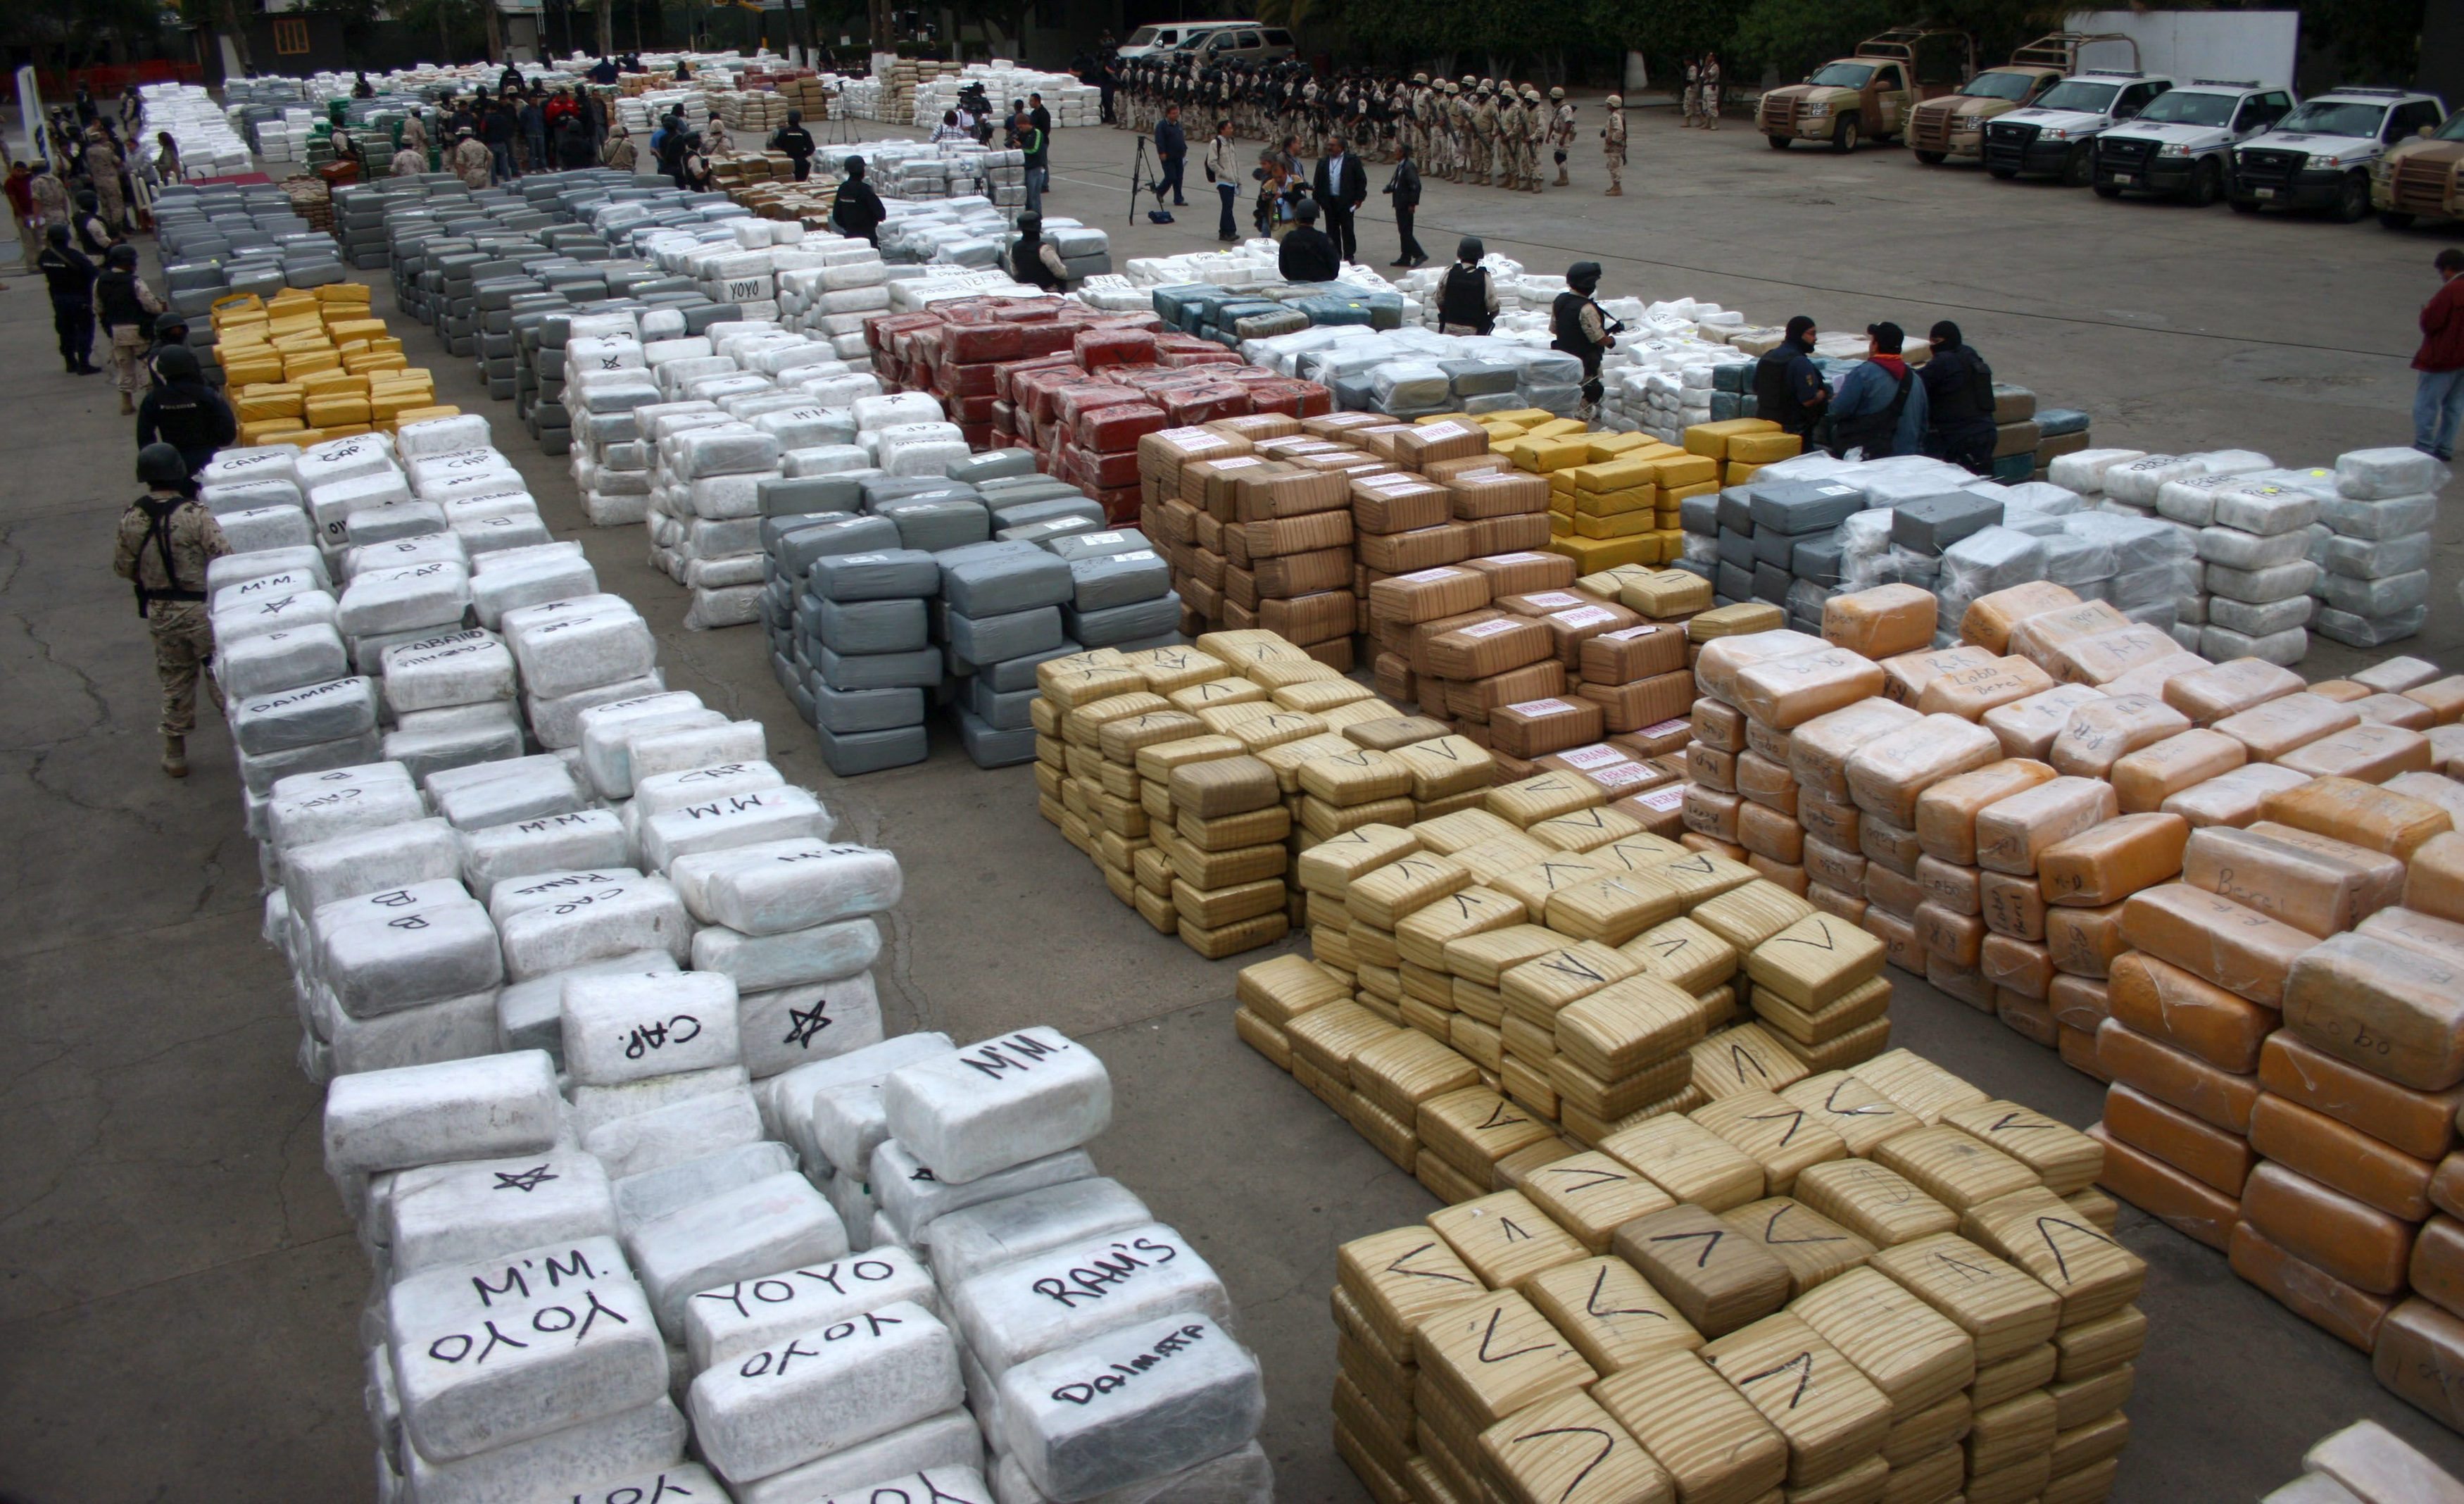 Narcotics wrapped in 10,000 brown and silver packages are on display in the patio of the Morelos military base in Tijuana October 18, 2010. Mexican soldiers seized 105 tonnes of marijuana with a U.S. street value of more than $340 million on Monday in Mexico's biggest-ever pot haul, the army said. Heavily armed soldiers raided a series of homes in a poor suburb of Tijuana, across the border from San Diego, California, and came under fire at least once as they took the drugs, also arresting 11 suspected traffickers.  REUTERS/Jorge Duenes (MEXICO - Tags: POLITICS CRIME LAW SOCIETY IMAGES OF THE DAY) - RTXTKOZ